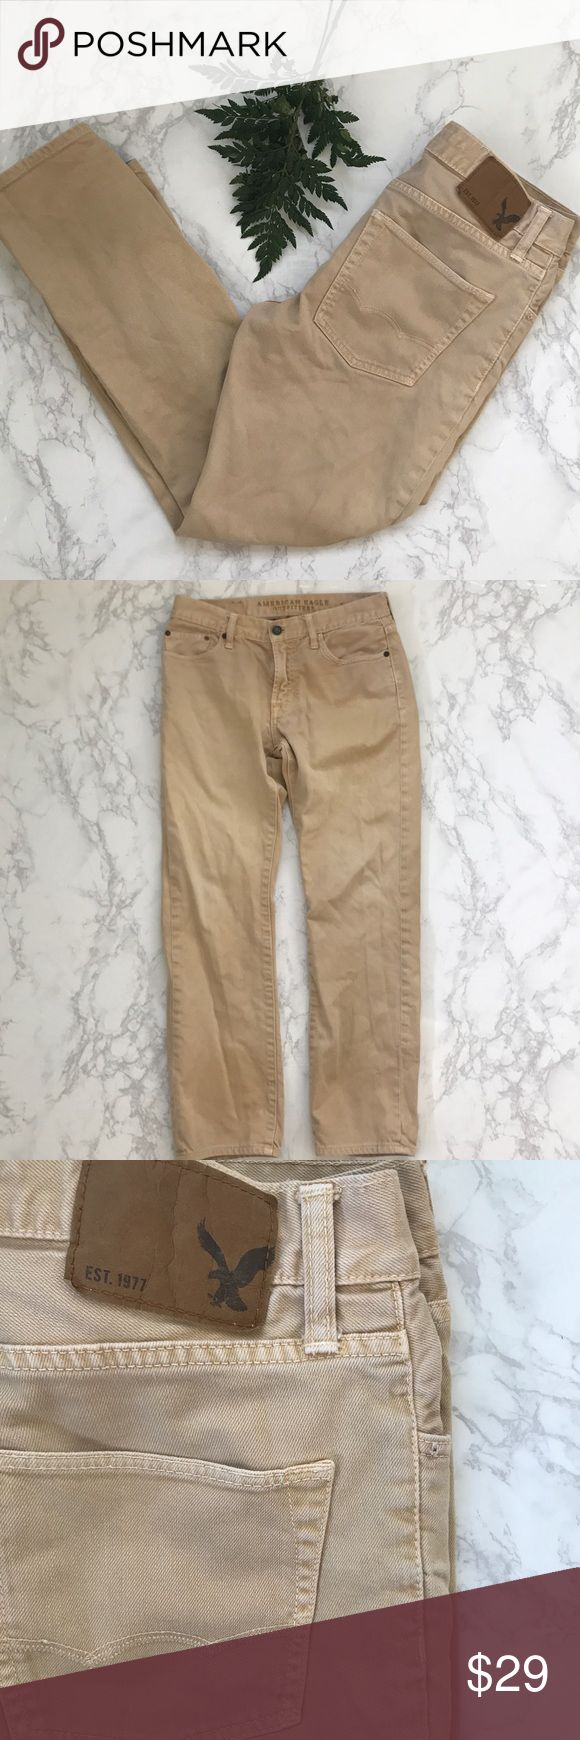 American Eagle Men's slim straight tan jeans 30/30 AE men's tan faded jeans in size 30 / 30 . Great condition ! 99% cotton , 1% spandex.   Tags : khakis , chinos , beige , light tan , work pants , casual , aeo, American eagle outifitters , 30 waist, cream American Eagle Outfitters Jeans Slim Straight